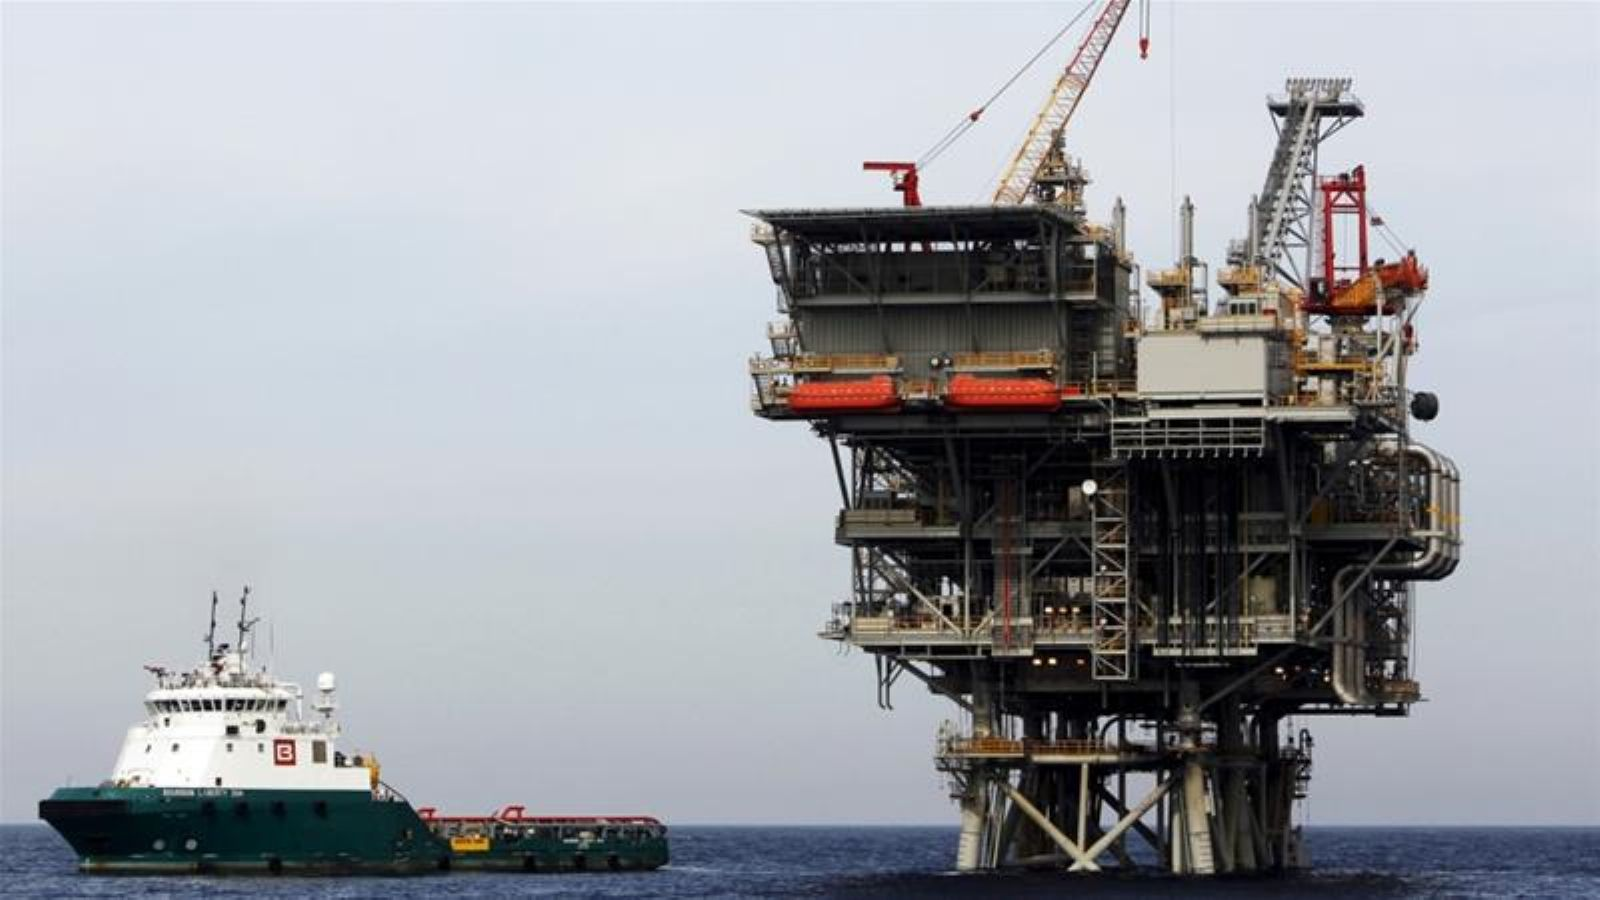 Israel signs gas deal with Egypt worth $15bn